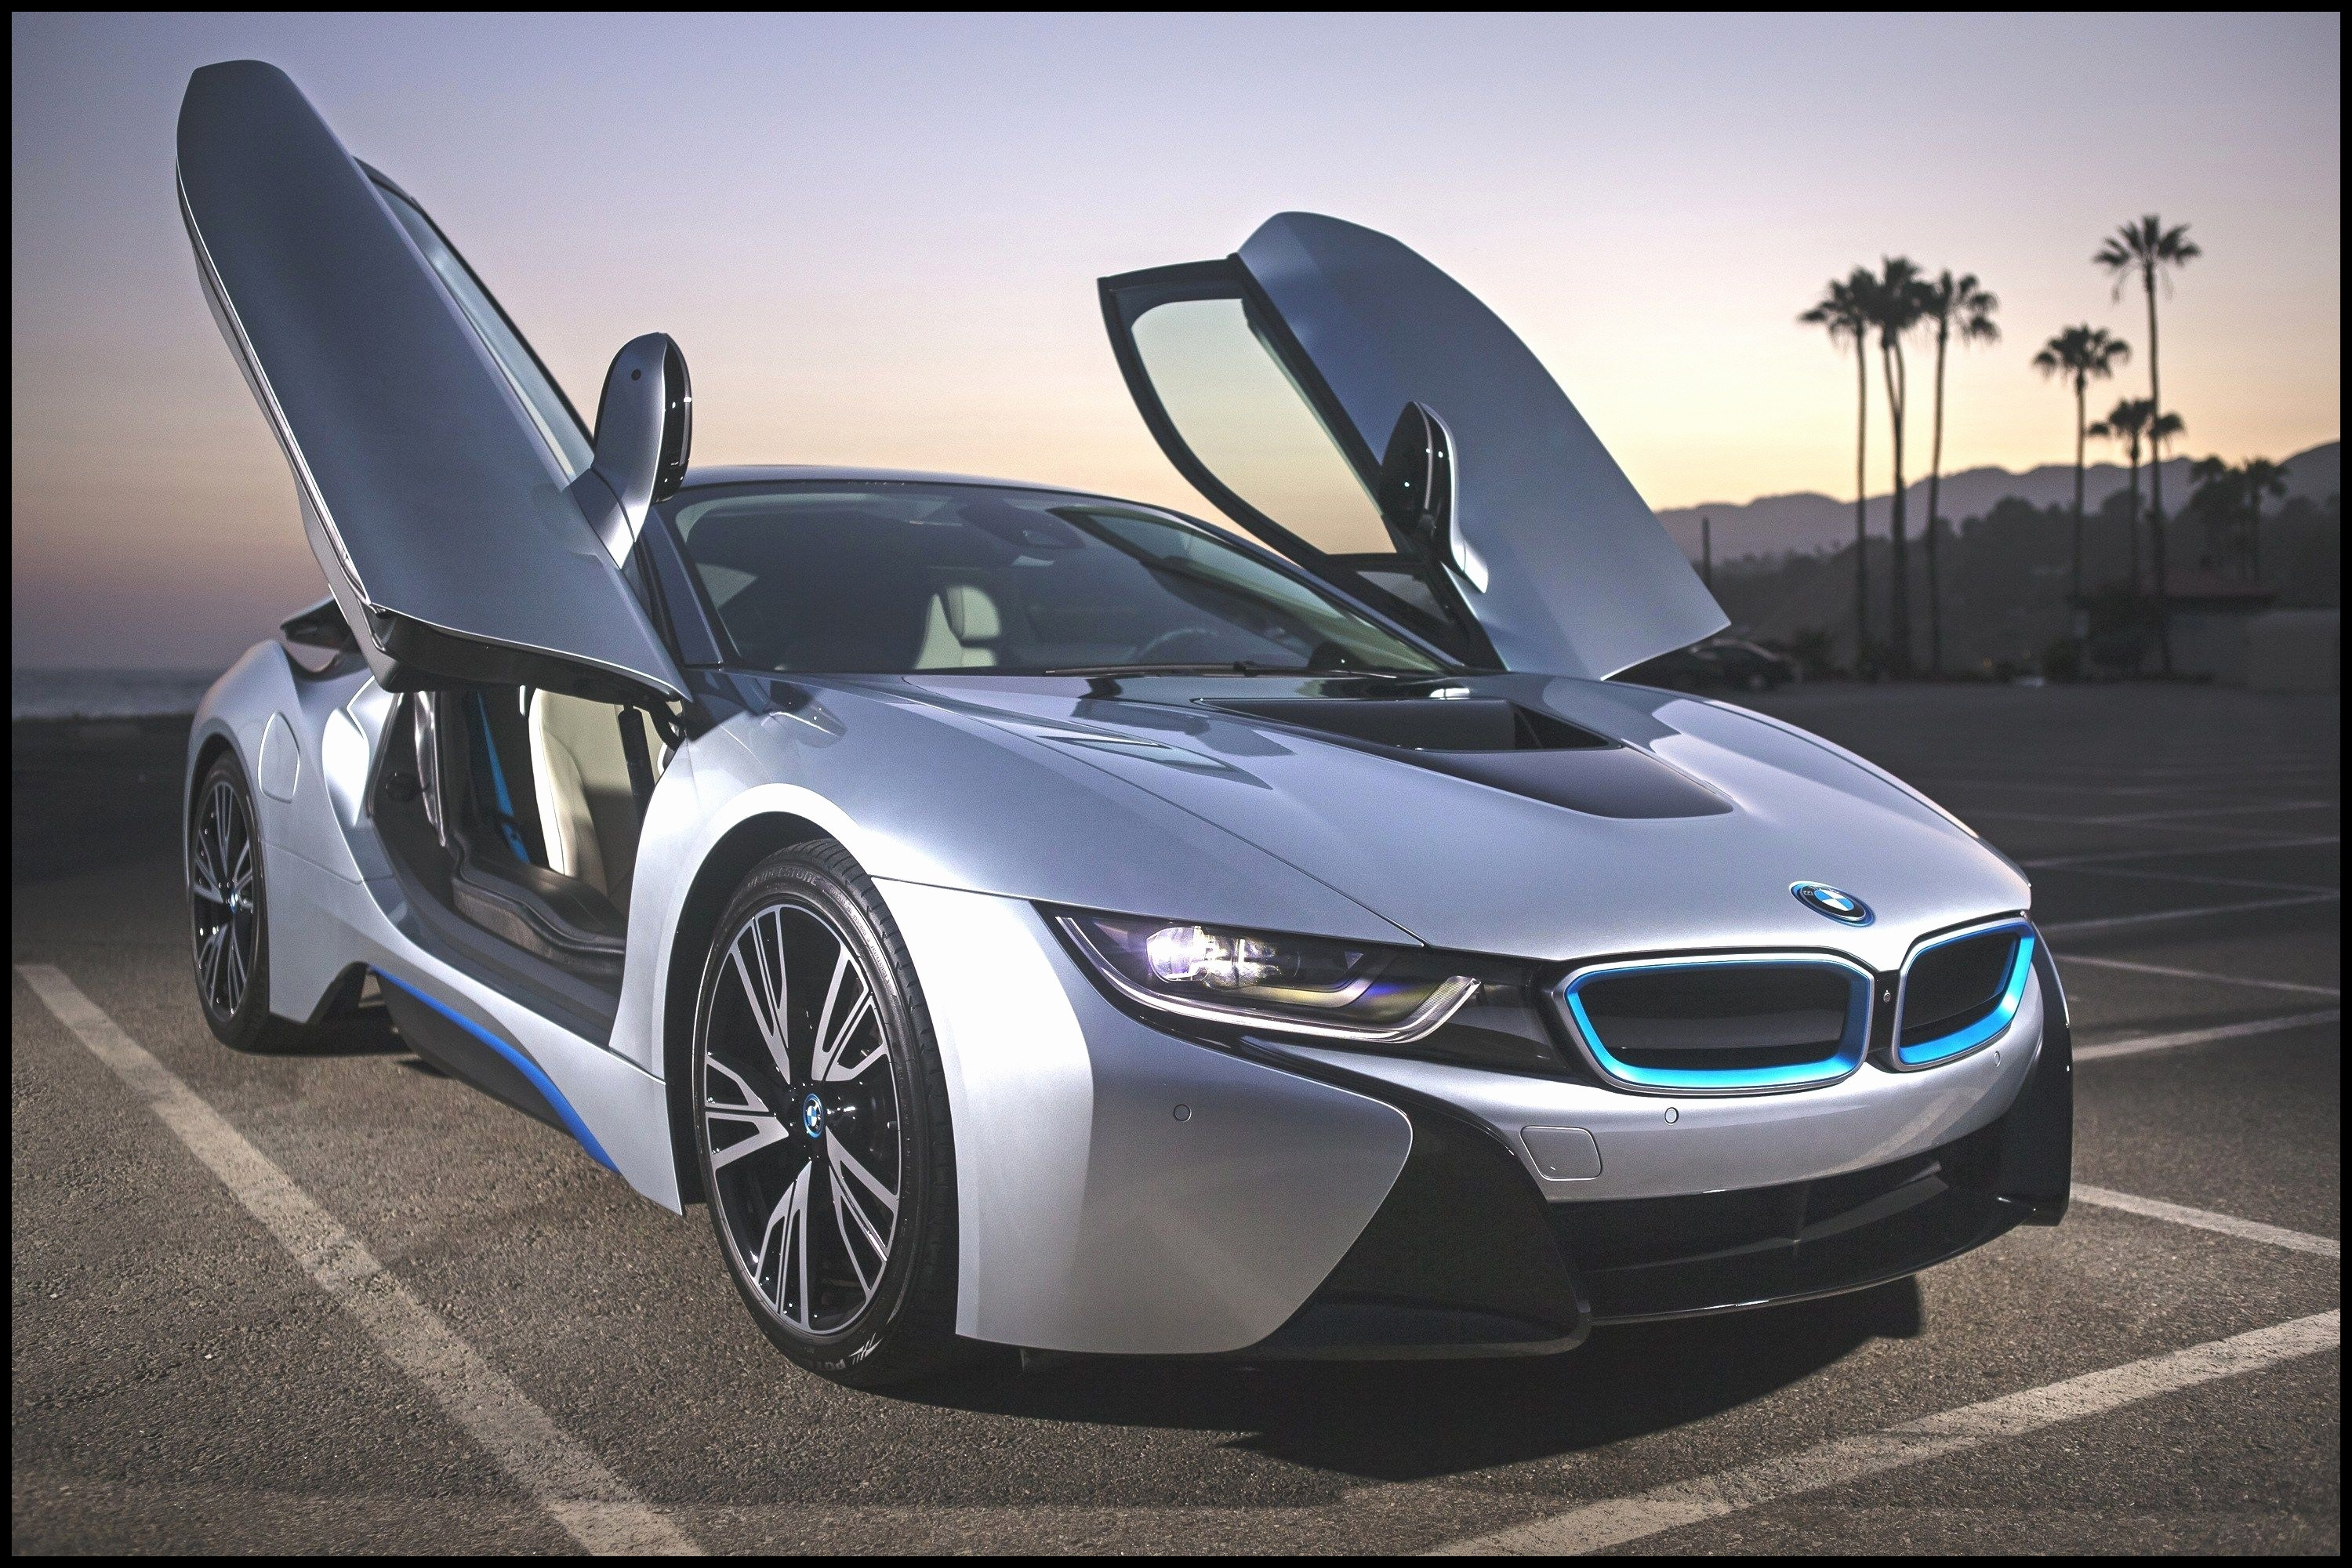 New Bmw Sports Car ing soon top top 19 Awesome Bmw Sports Cars